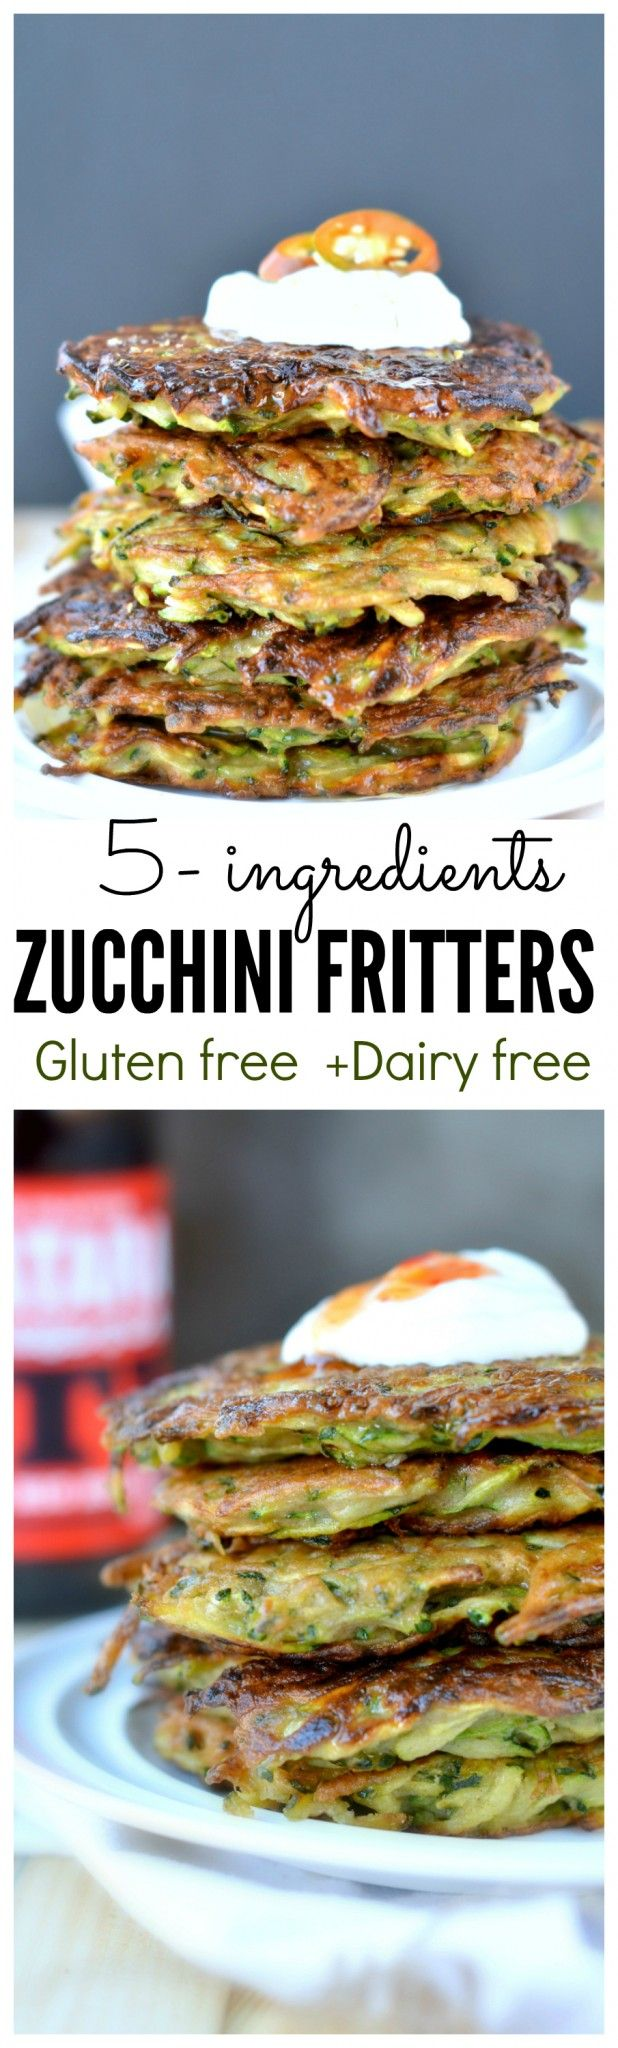 5-ingredients Gluten Free Zucchini Fritters, super crispy, can be used as burger buns too or as a small snack in kids lunch box. Dairy free fritters too.